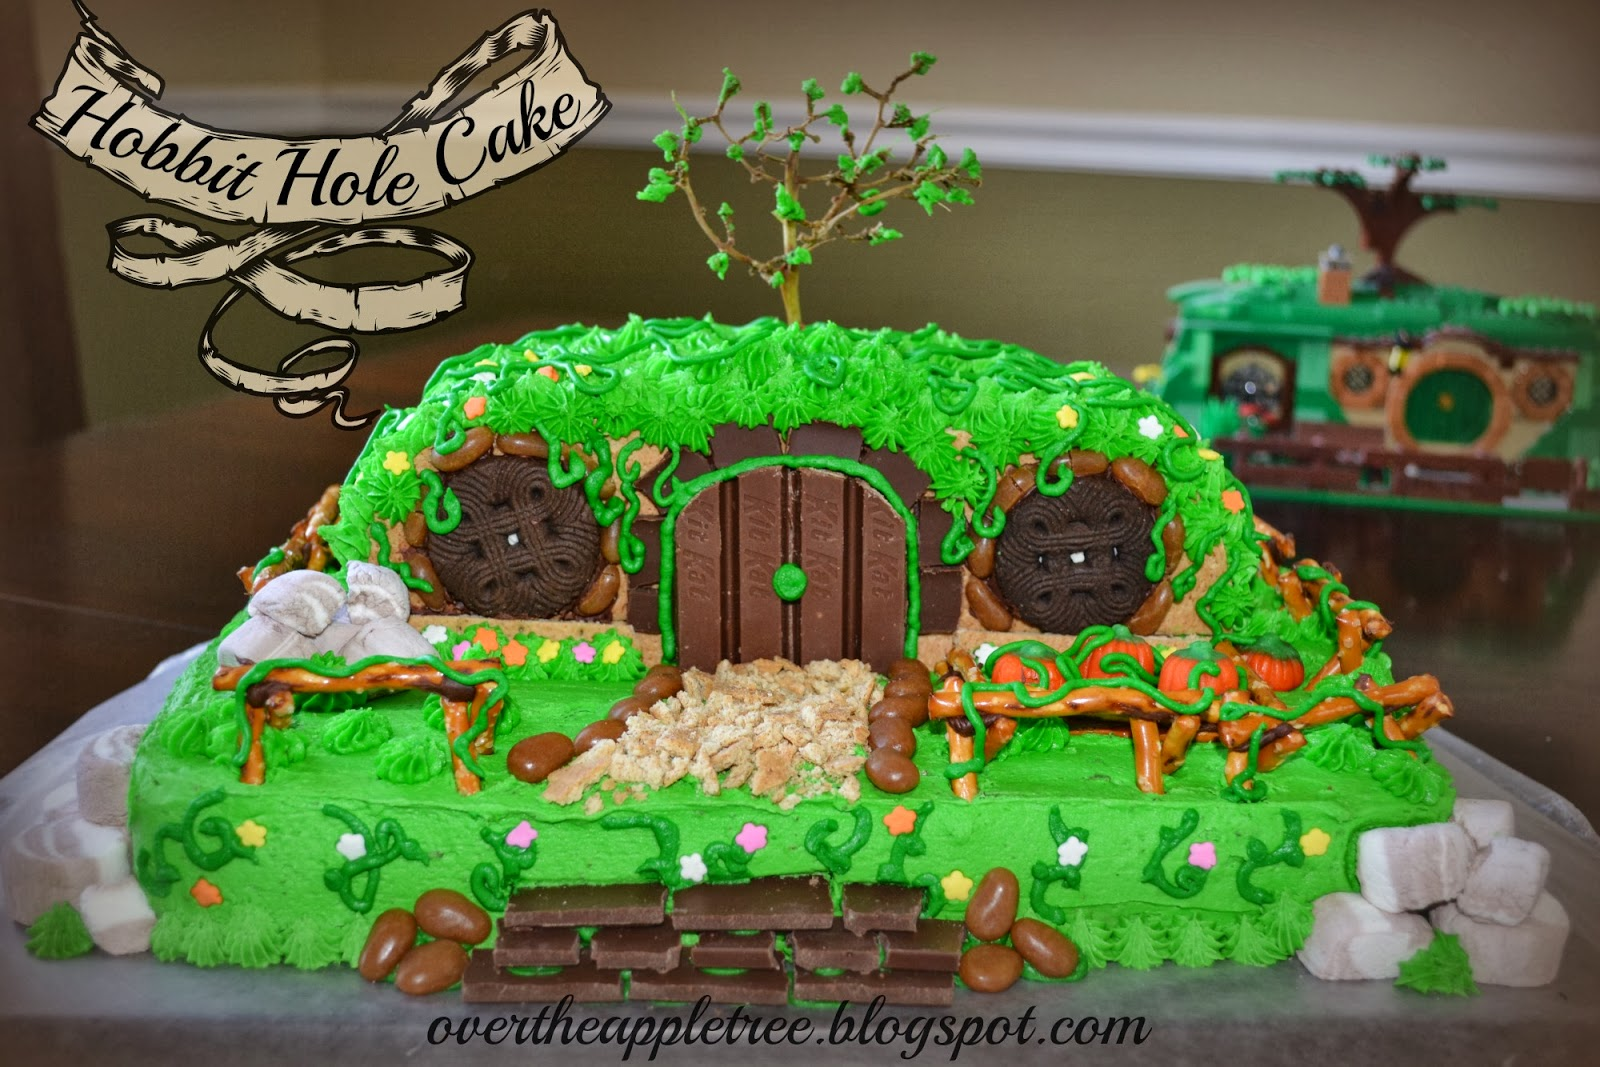 Remarkable 12 Simple Hobbit Cakes Photo Diy Hobbit Hole Birthday Cake Birthday Cards Printable Giouspongecafe Filternl